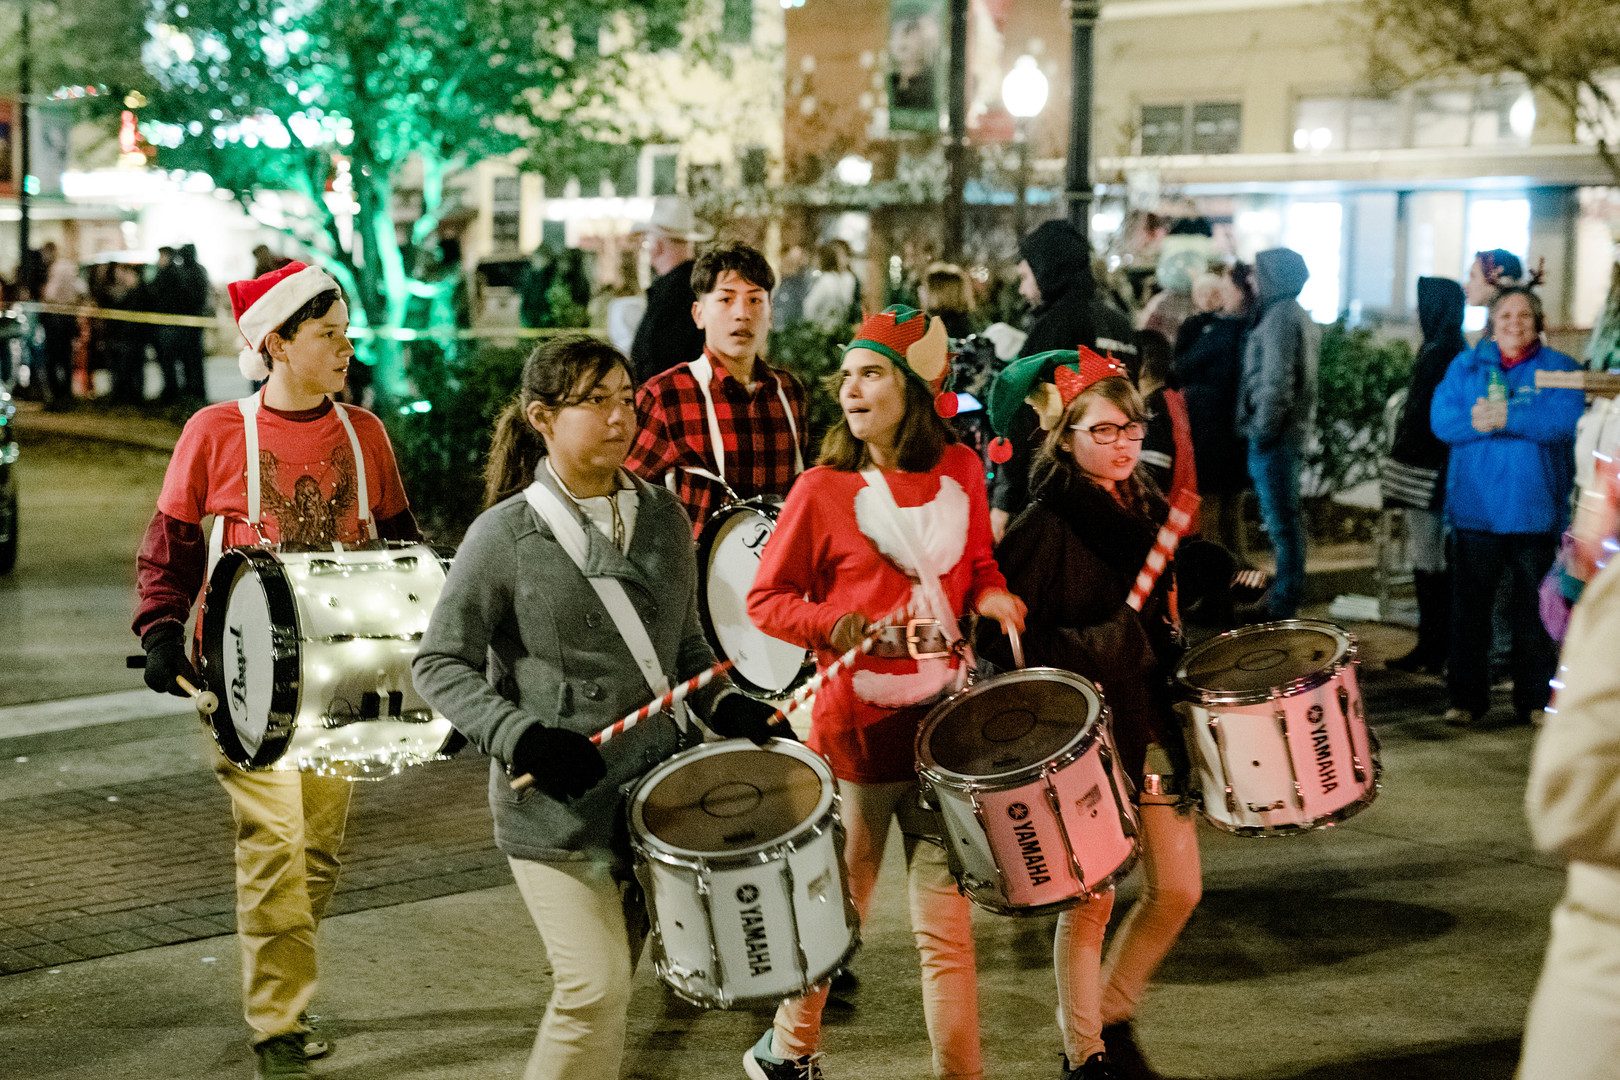 Downtown-Bryan-Christmas-Parade-2018-77.